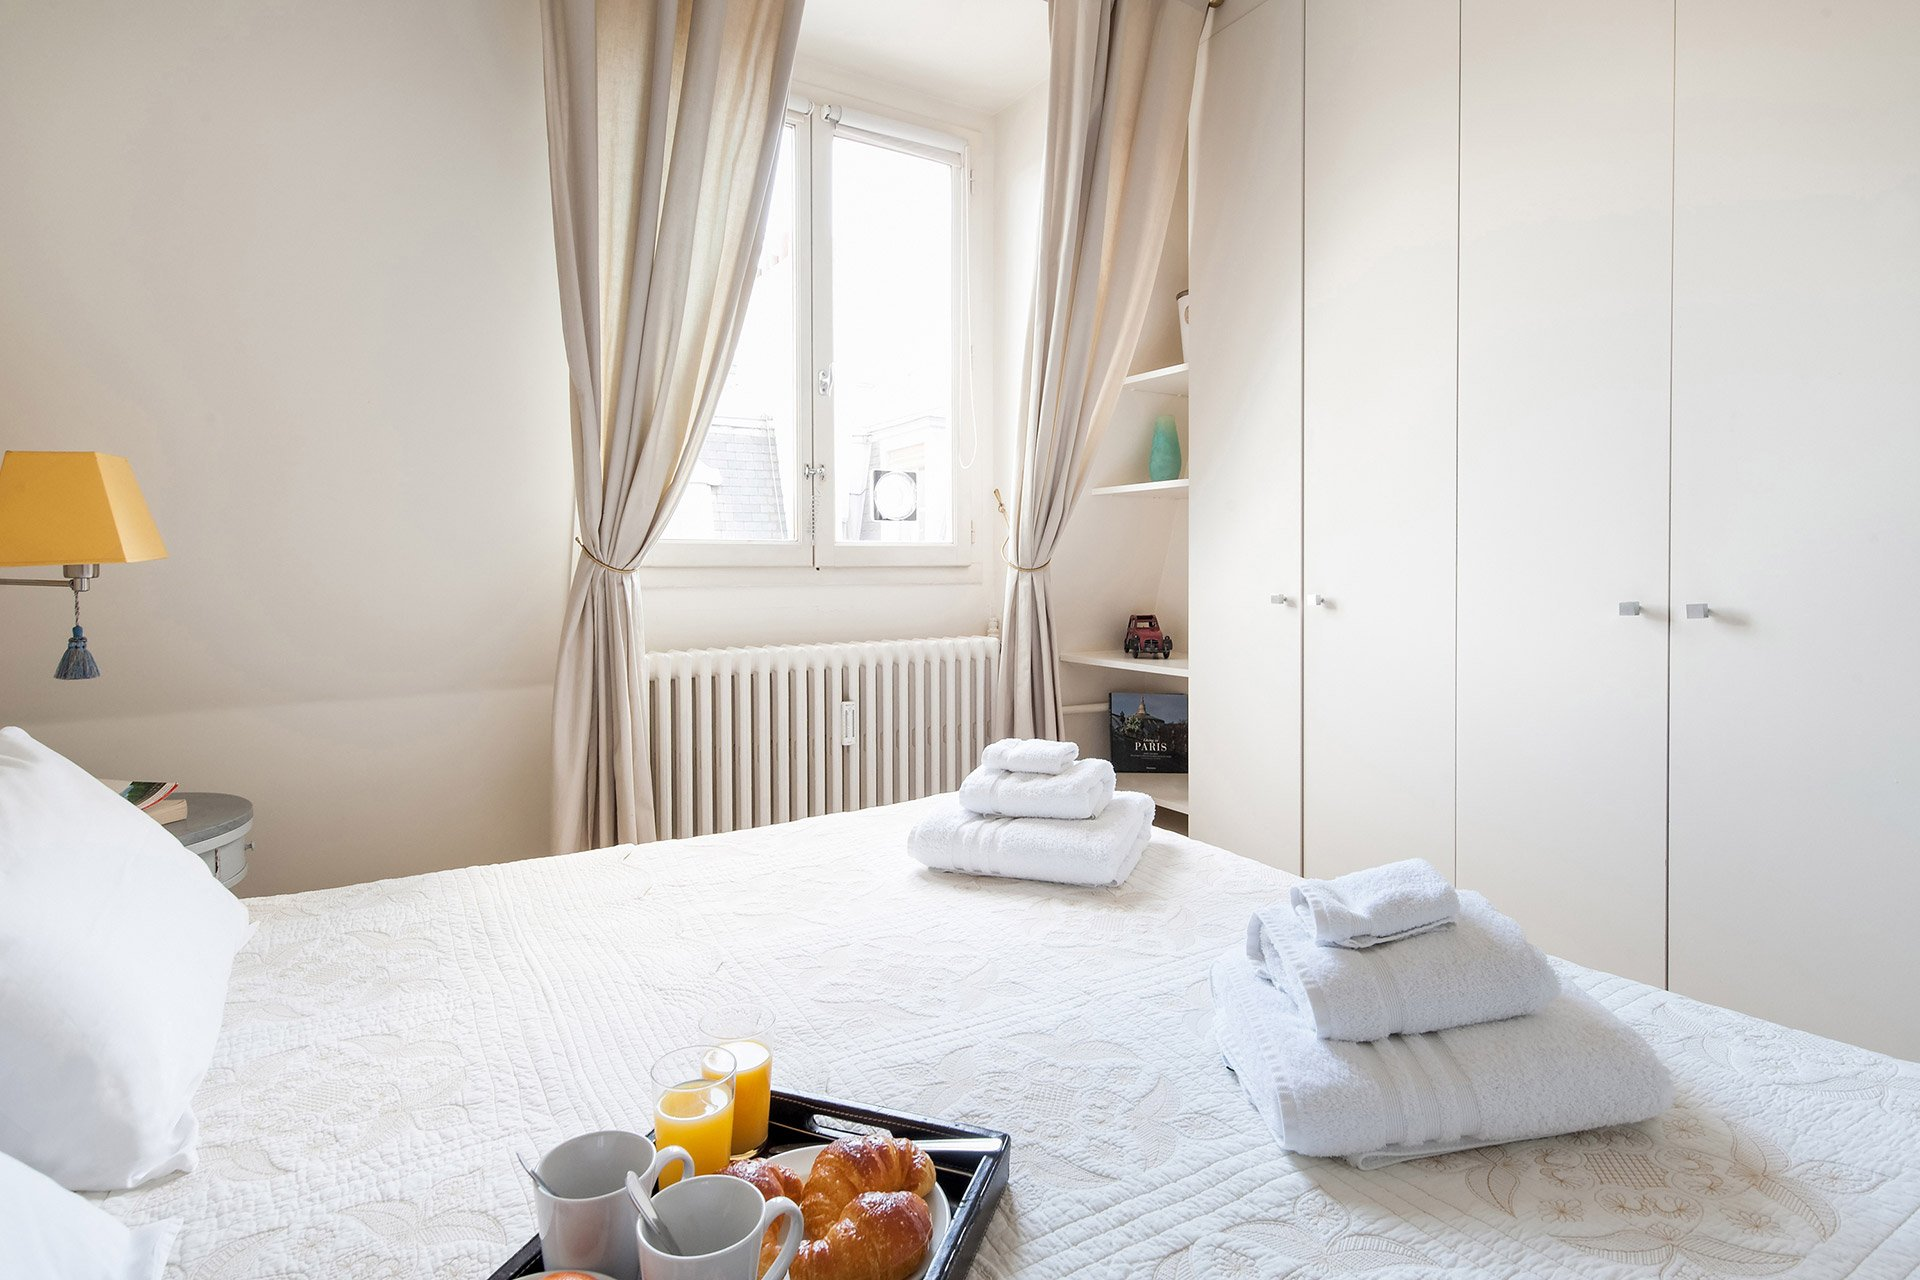 Plenty of closet space in the Romanée vacation rental offered by Paris Perfect